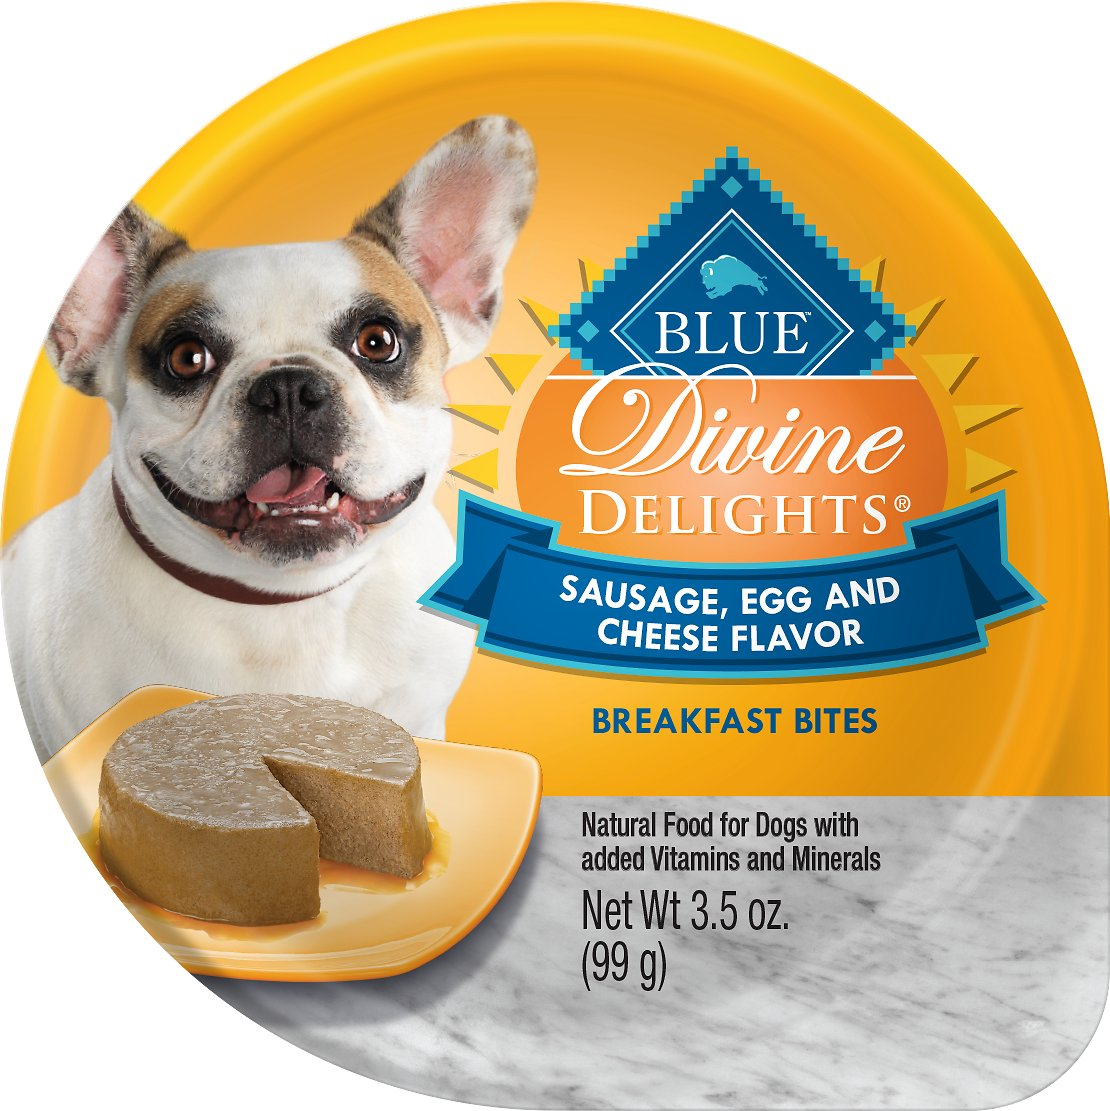 Blue Buffalo Divine Delights Sausage, Egg & Cheese Flavor Pate Dog Food Trays Image